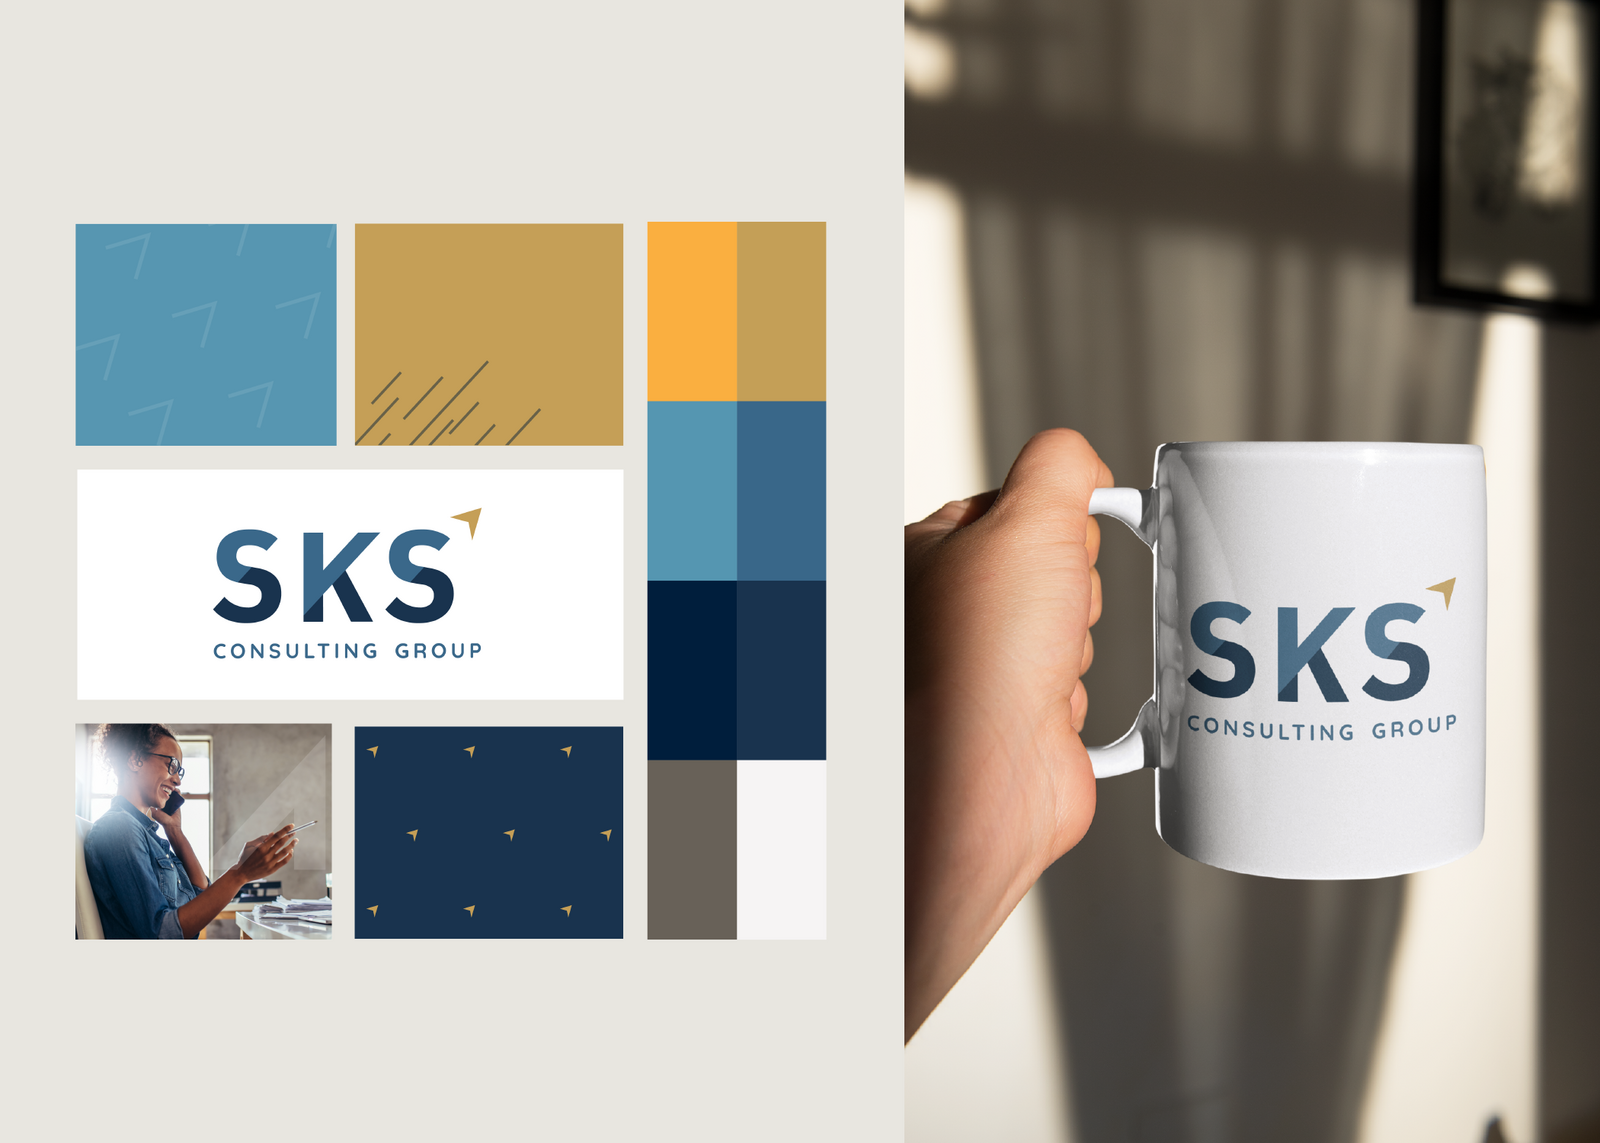 ash-Design-Graphic-Design-Gallery_Graphic-Design-SKS-Consulting-Group-1